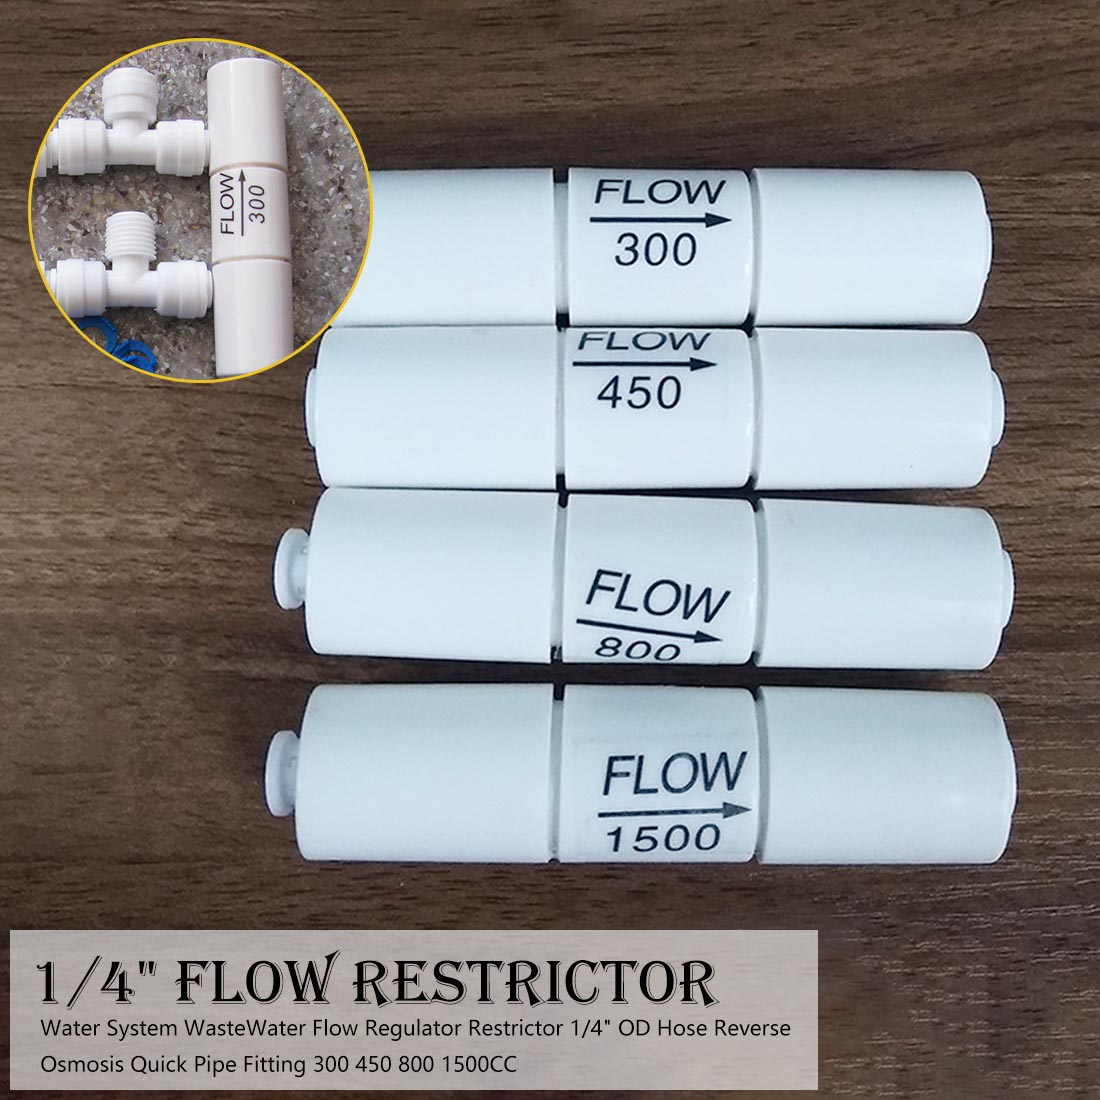 Hose Reverse Osmosis WasteWater Flow Regulator Restrictor 1/4